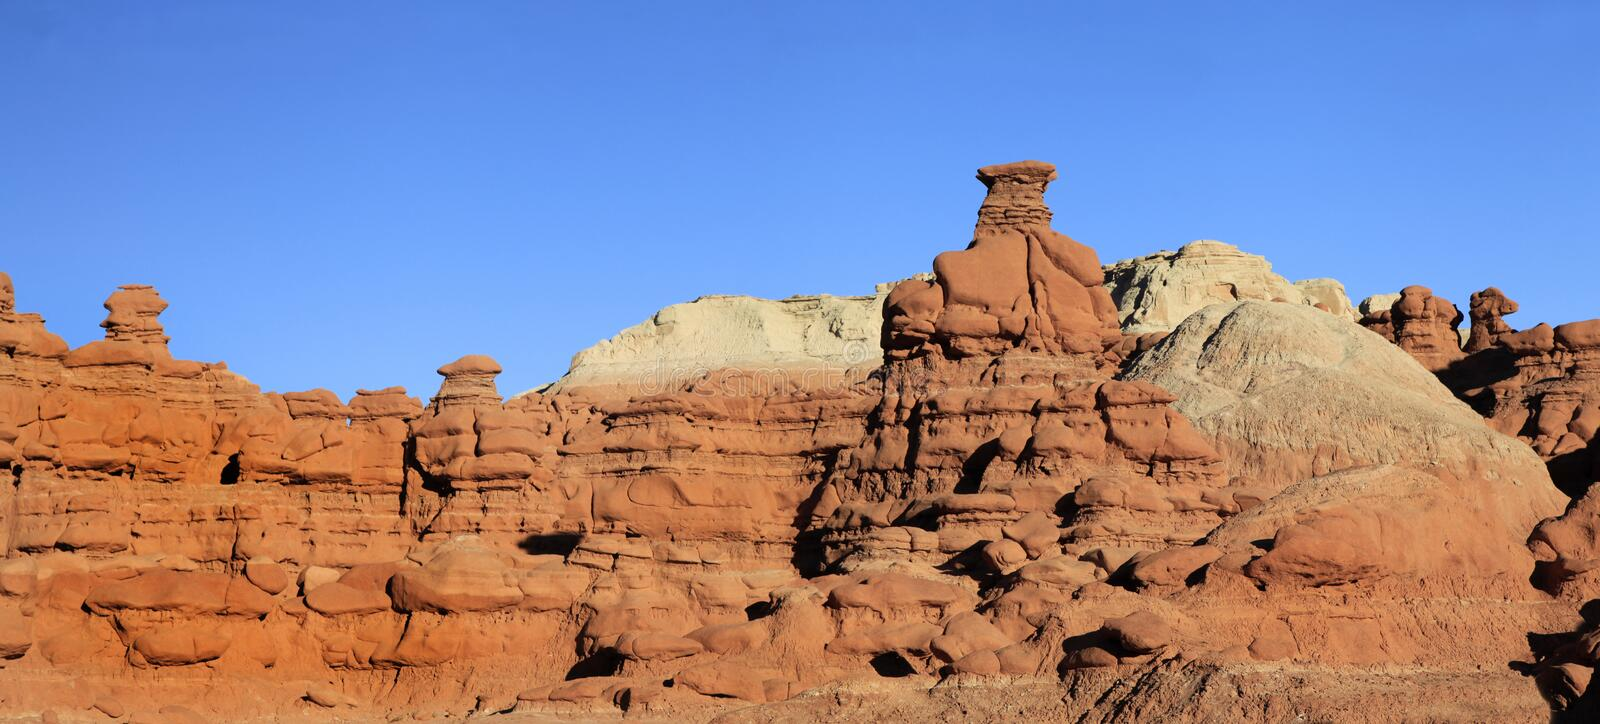 Panorama of Sandstone formations at Goblin Valley State Park, Ut royalty free stock photo